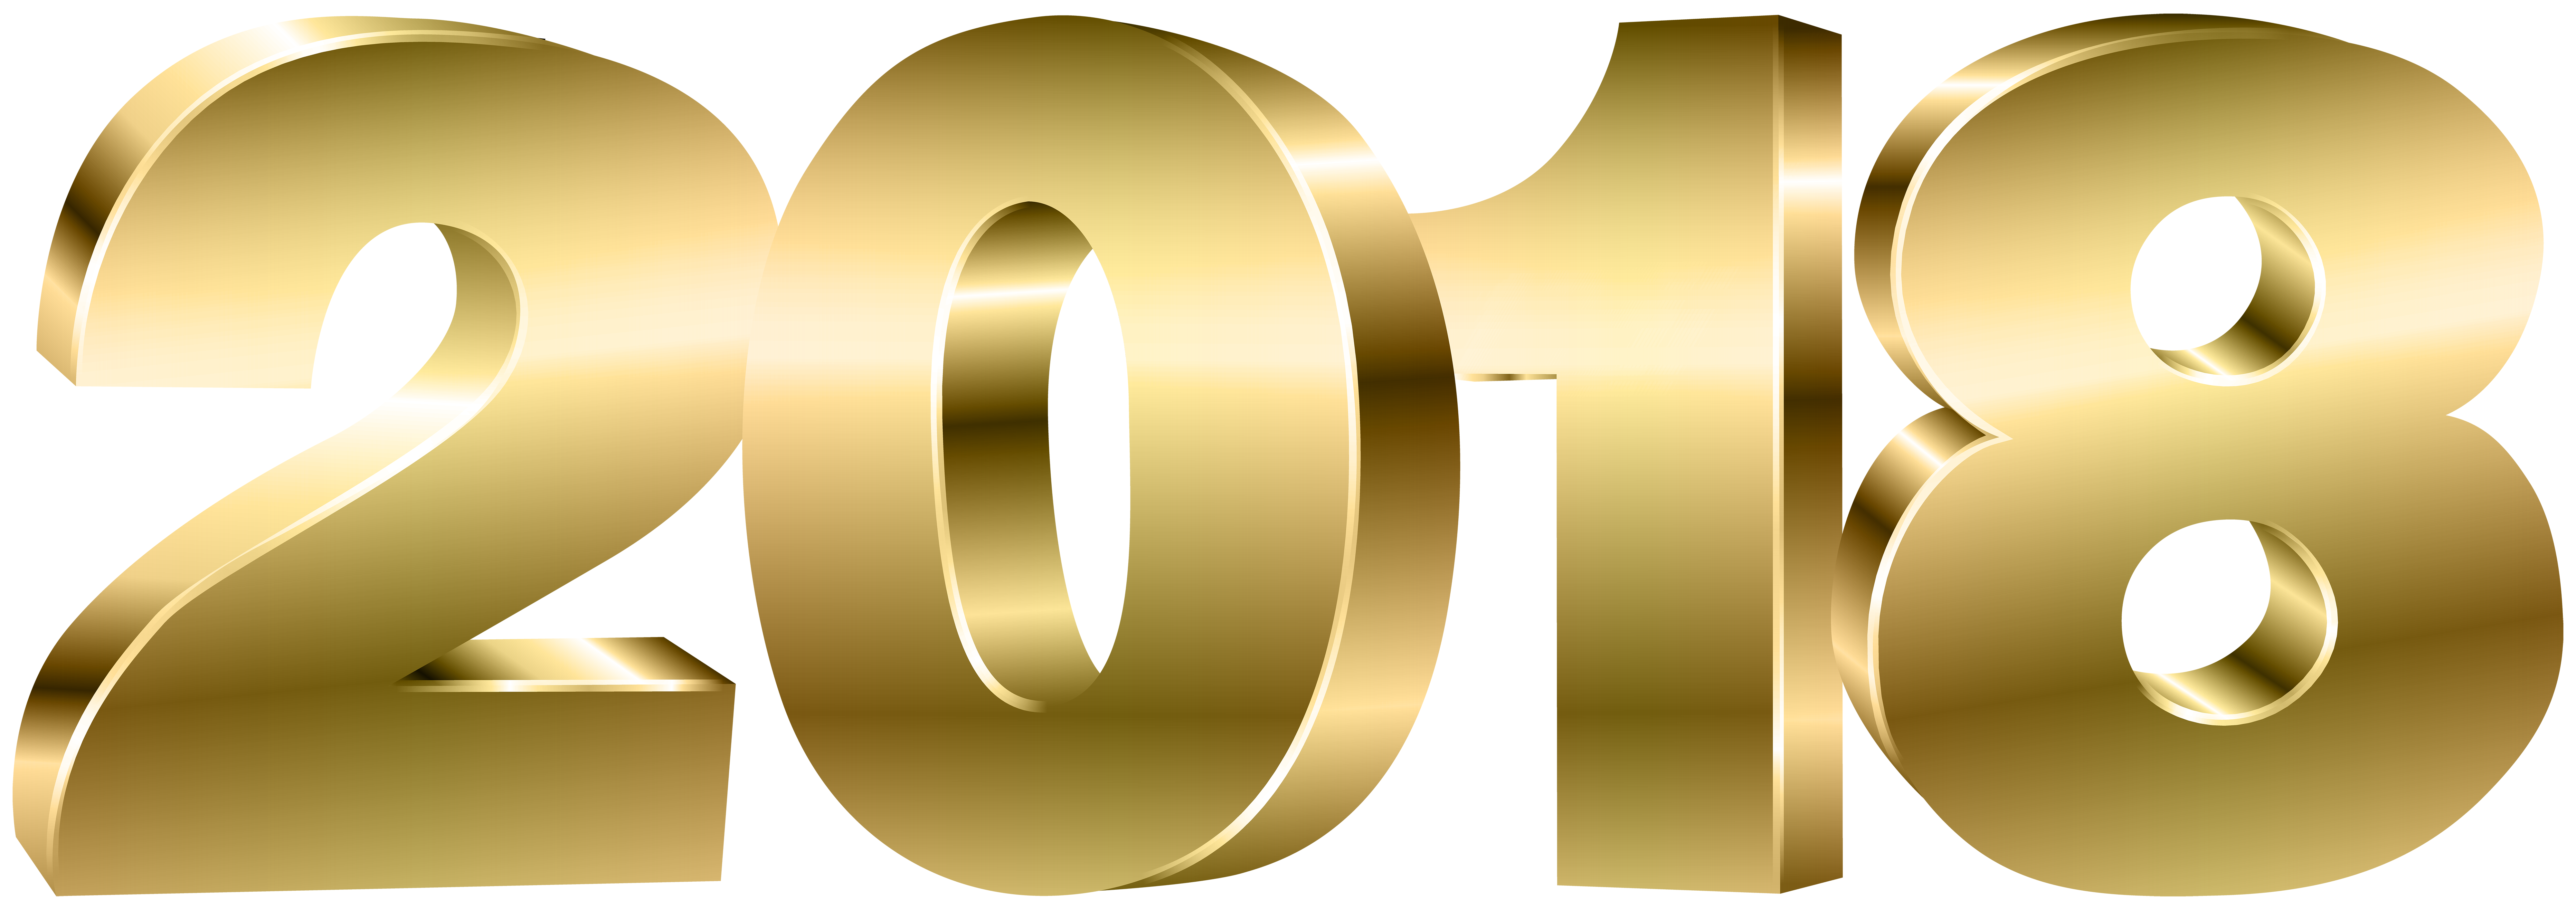 svg transparent library  gold png image. 2018 clipart